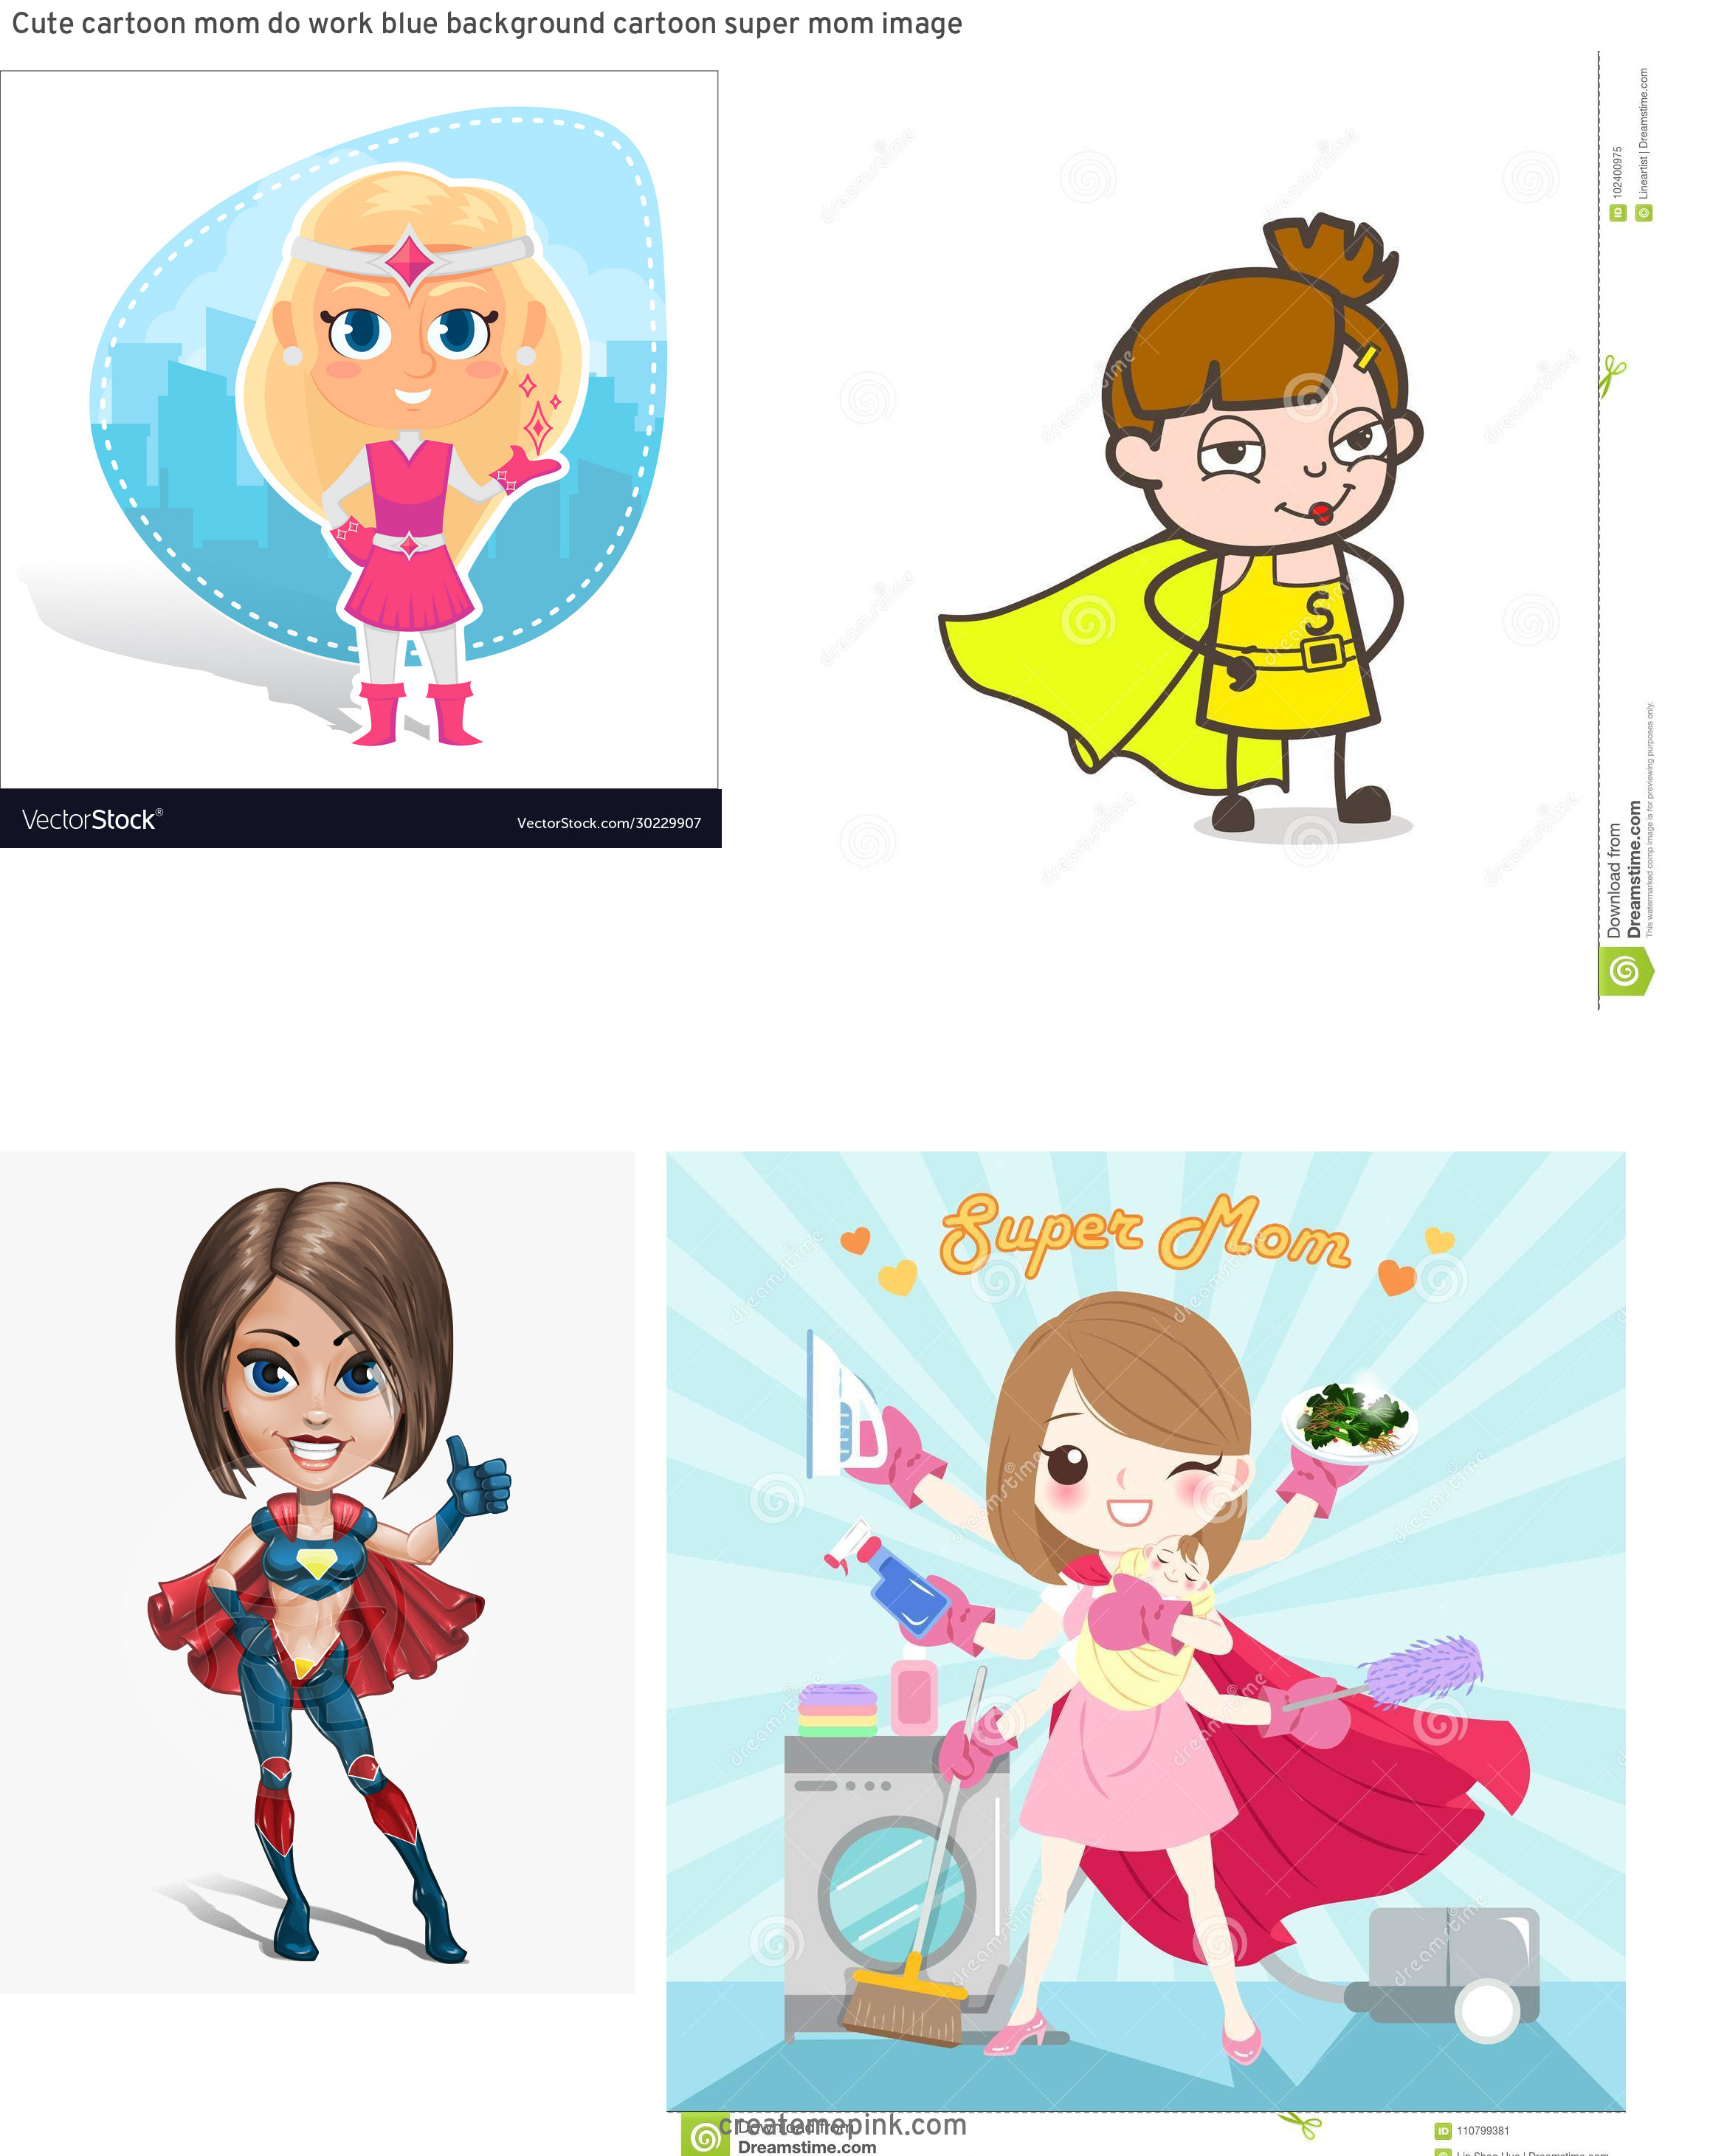 Super Cute Cartoon Girl Vector: Cute Cartoon Mom Do Work Blue Background Cartoon Super Mom Image